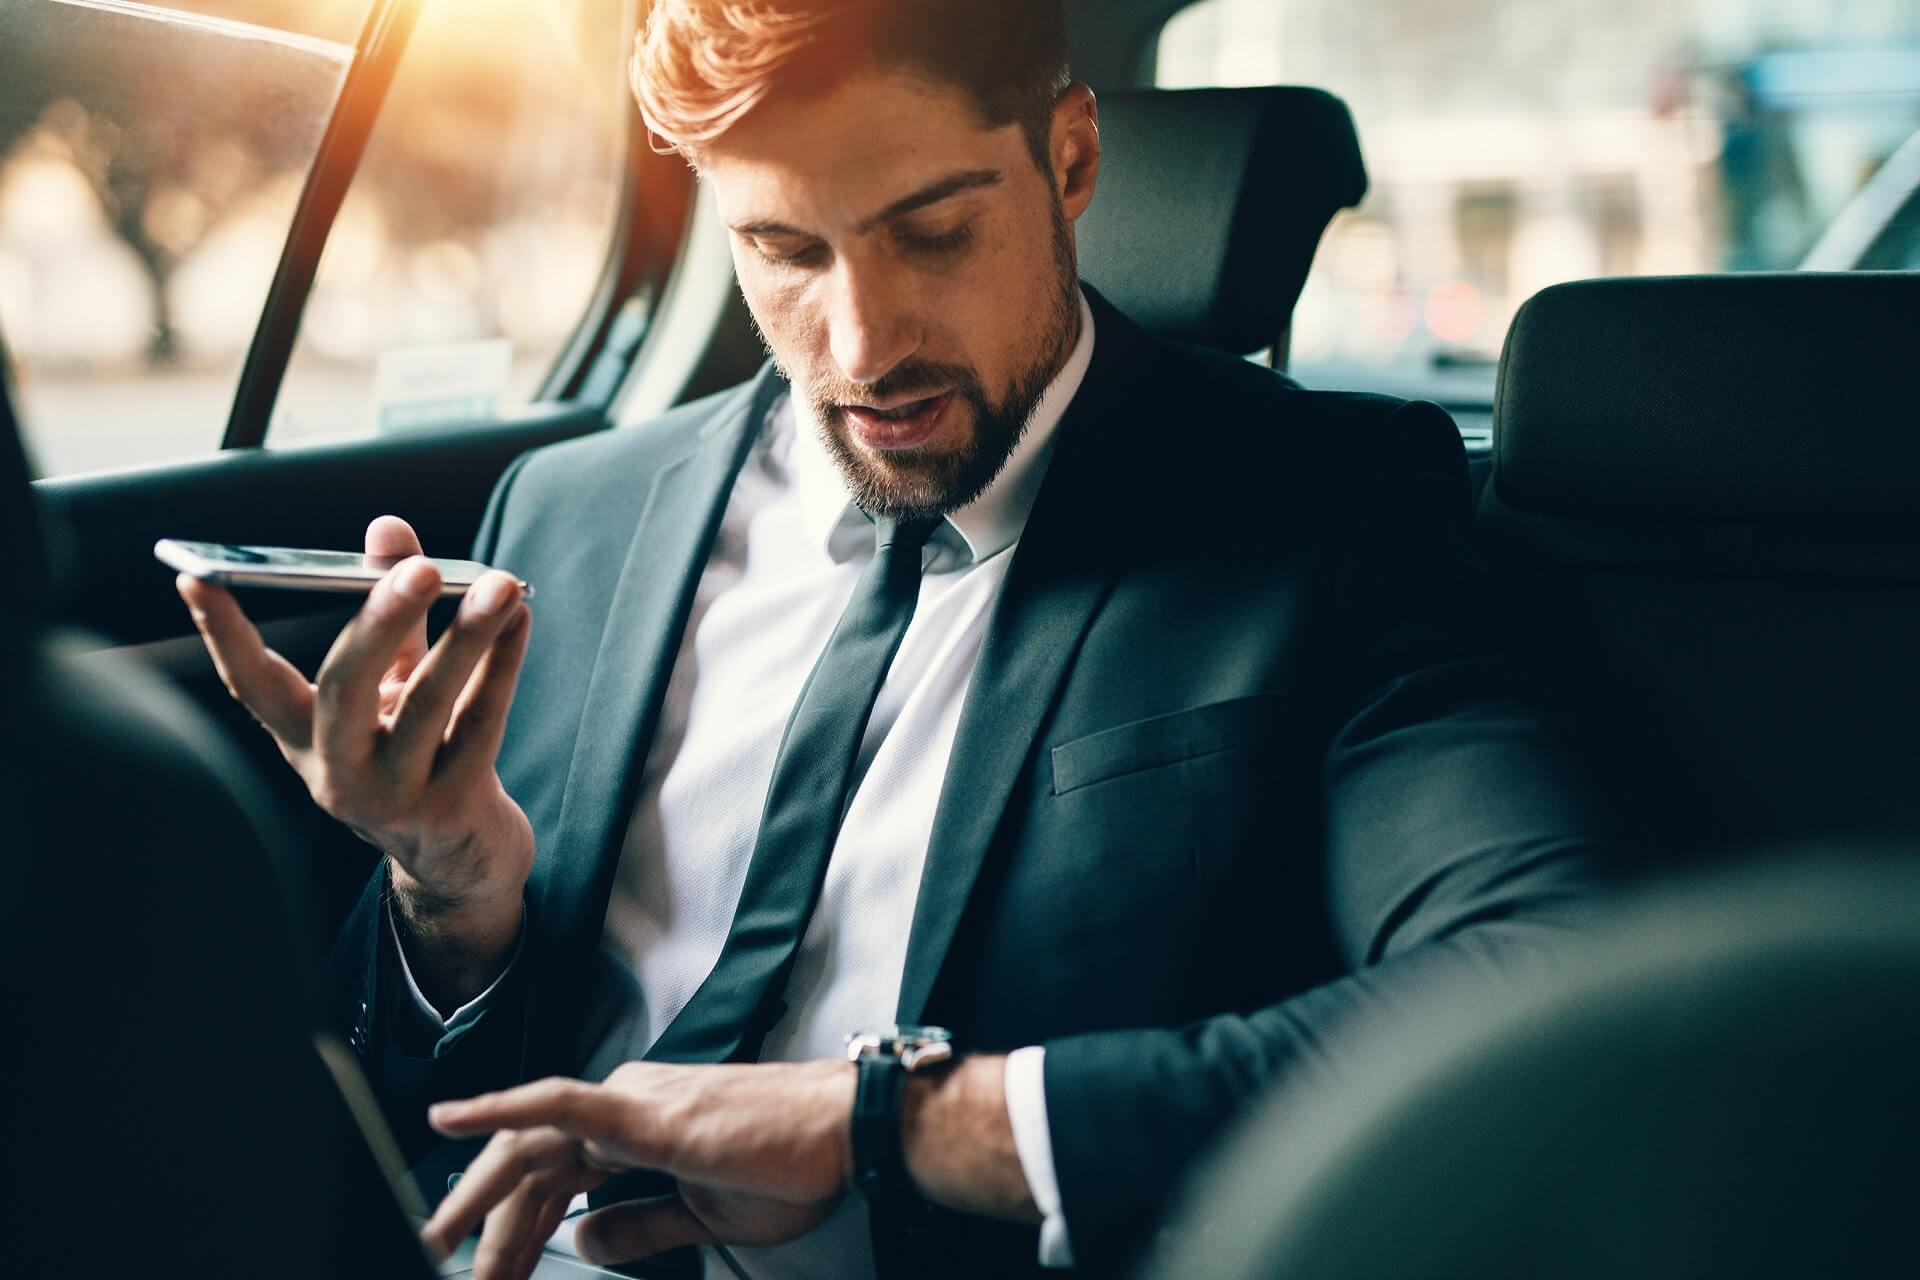 Businessman travelling by car using smart phone and checking time